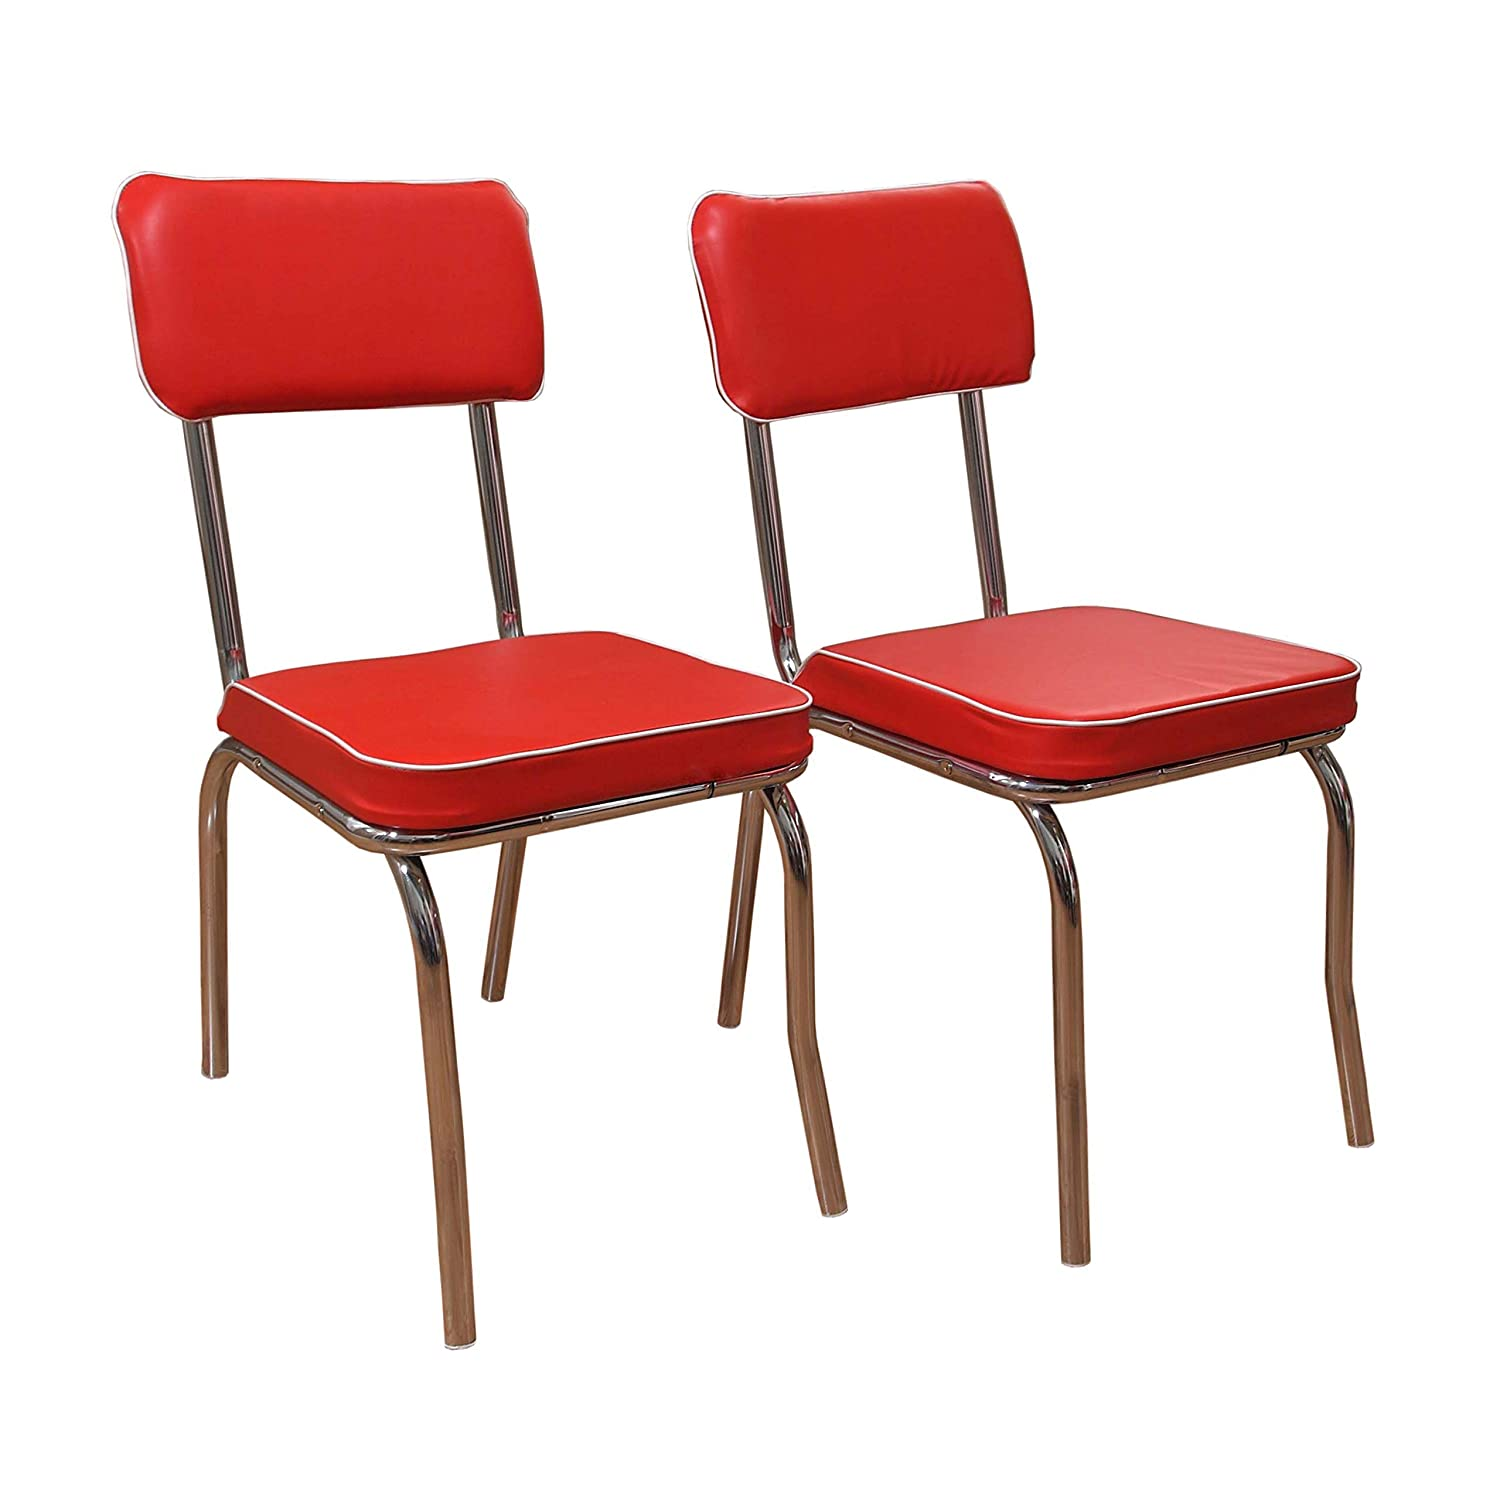 Target Marketing Systems Set Of 2 Retro Upholstered Vinyl Dining Chairs With Chrome Accents Red